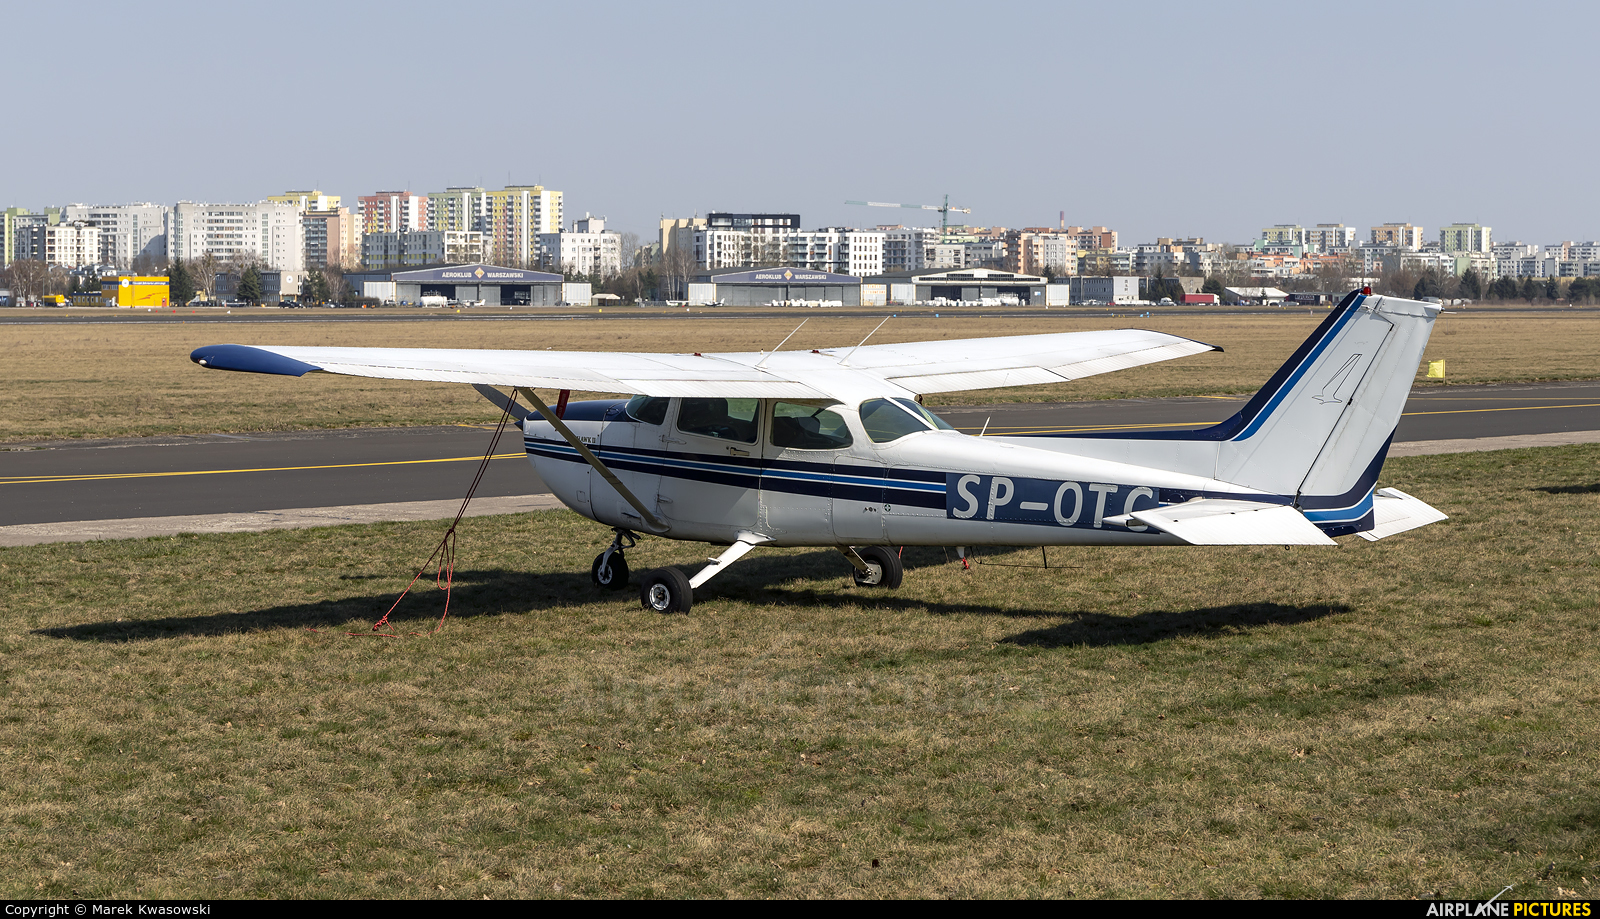 Goldwings Flight Academy SP-OTC aircraft at Warsaw - Babice